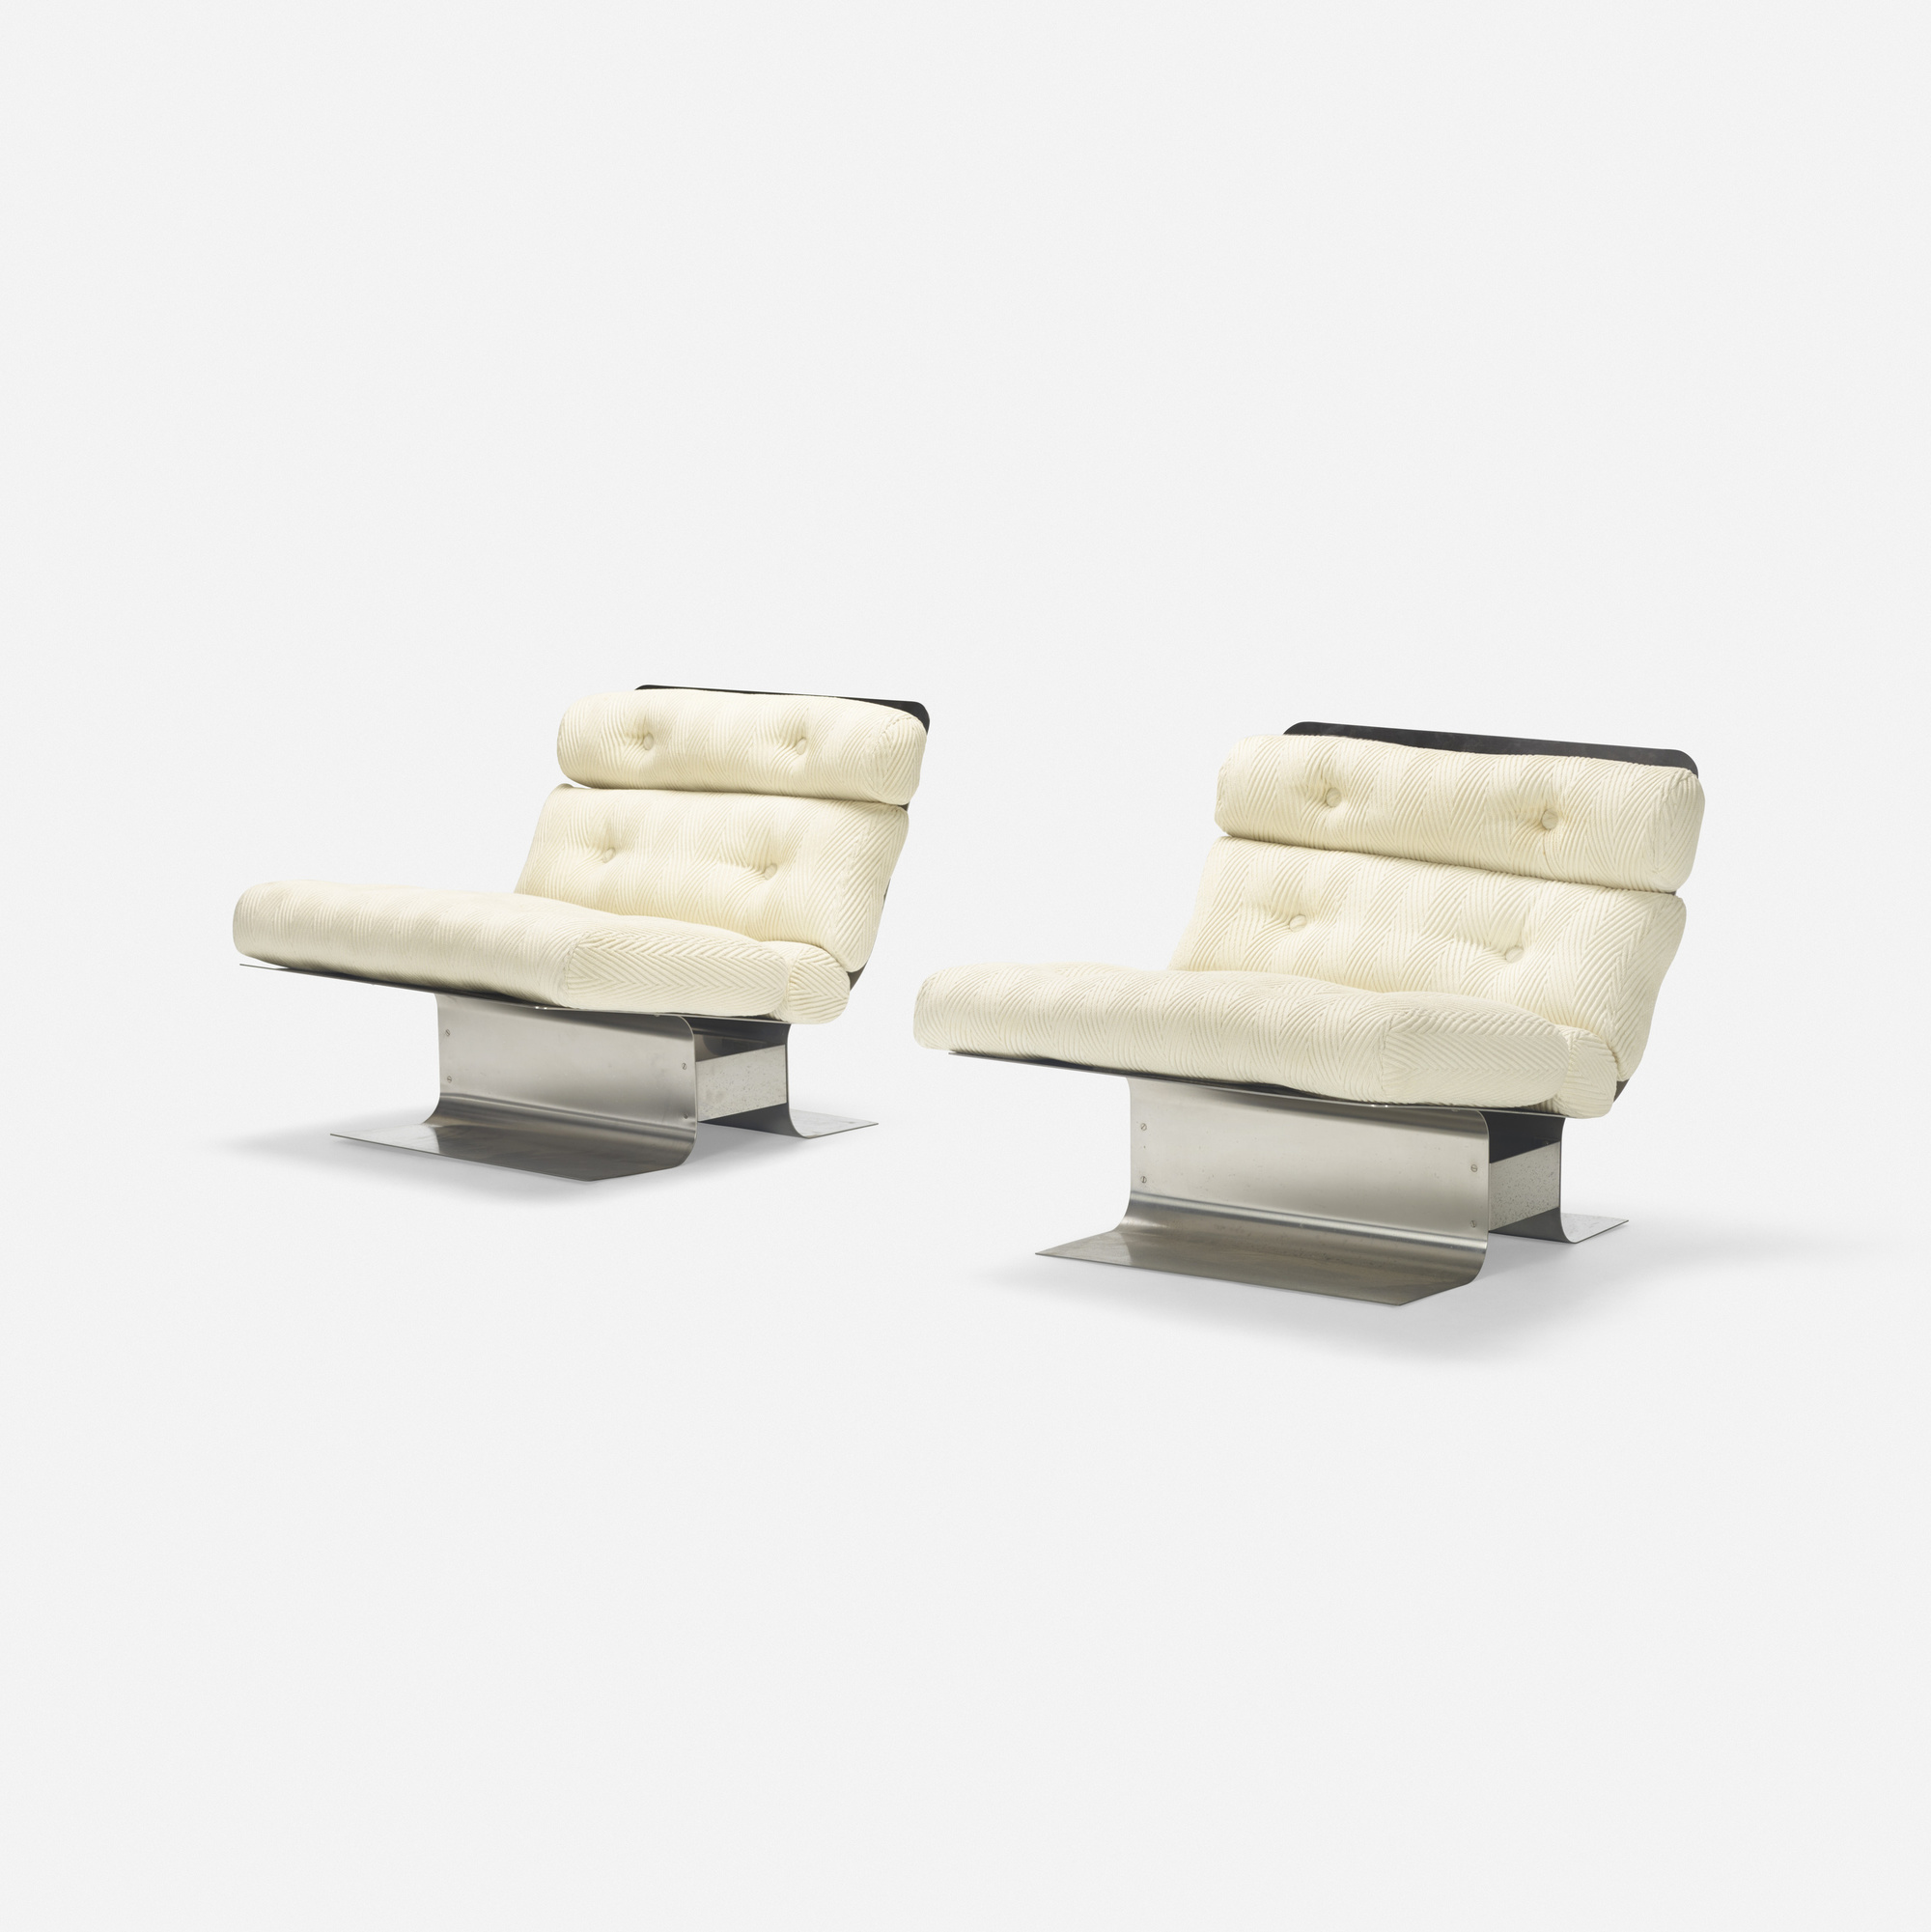 328: François Monnet / lounge chairs, pair (2 of 5)